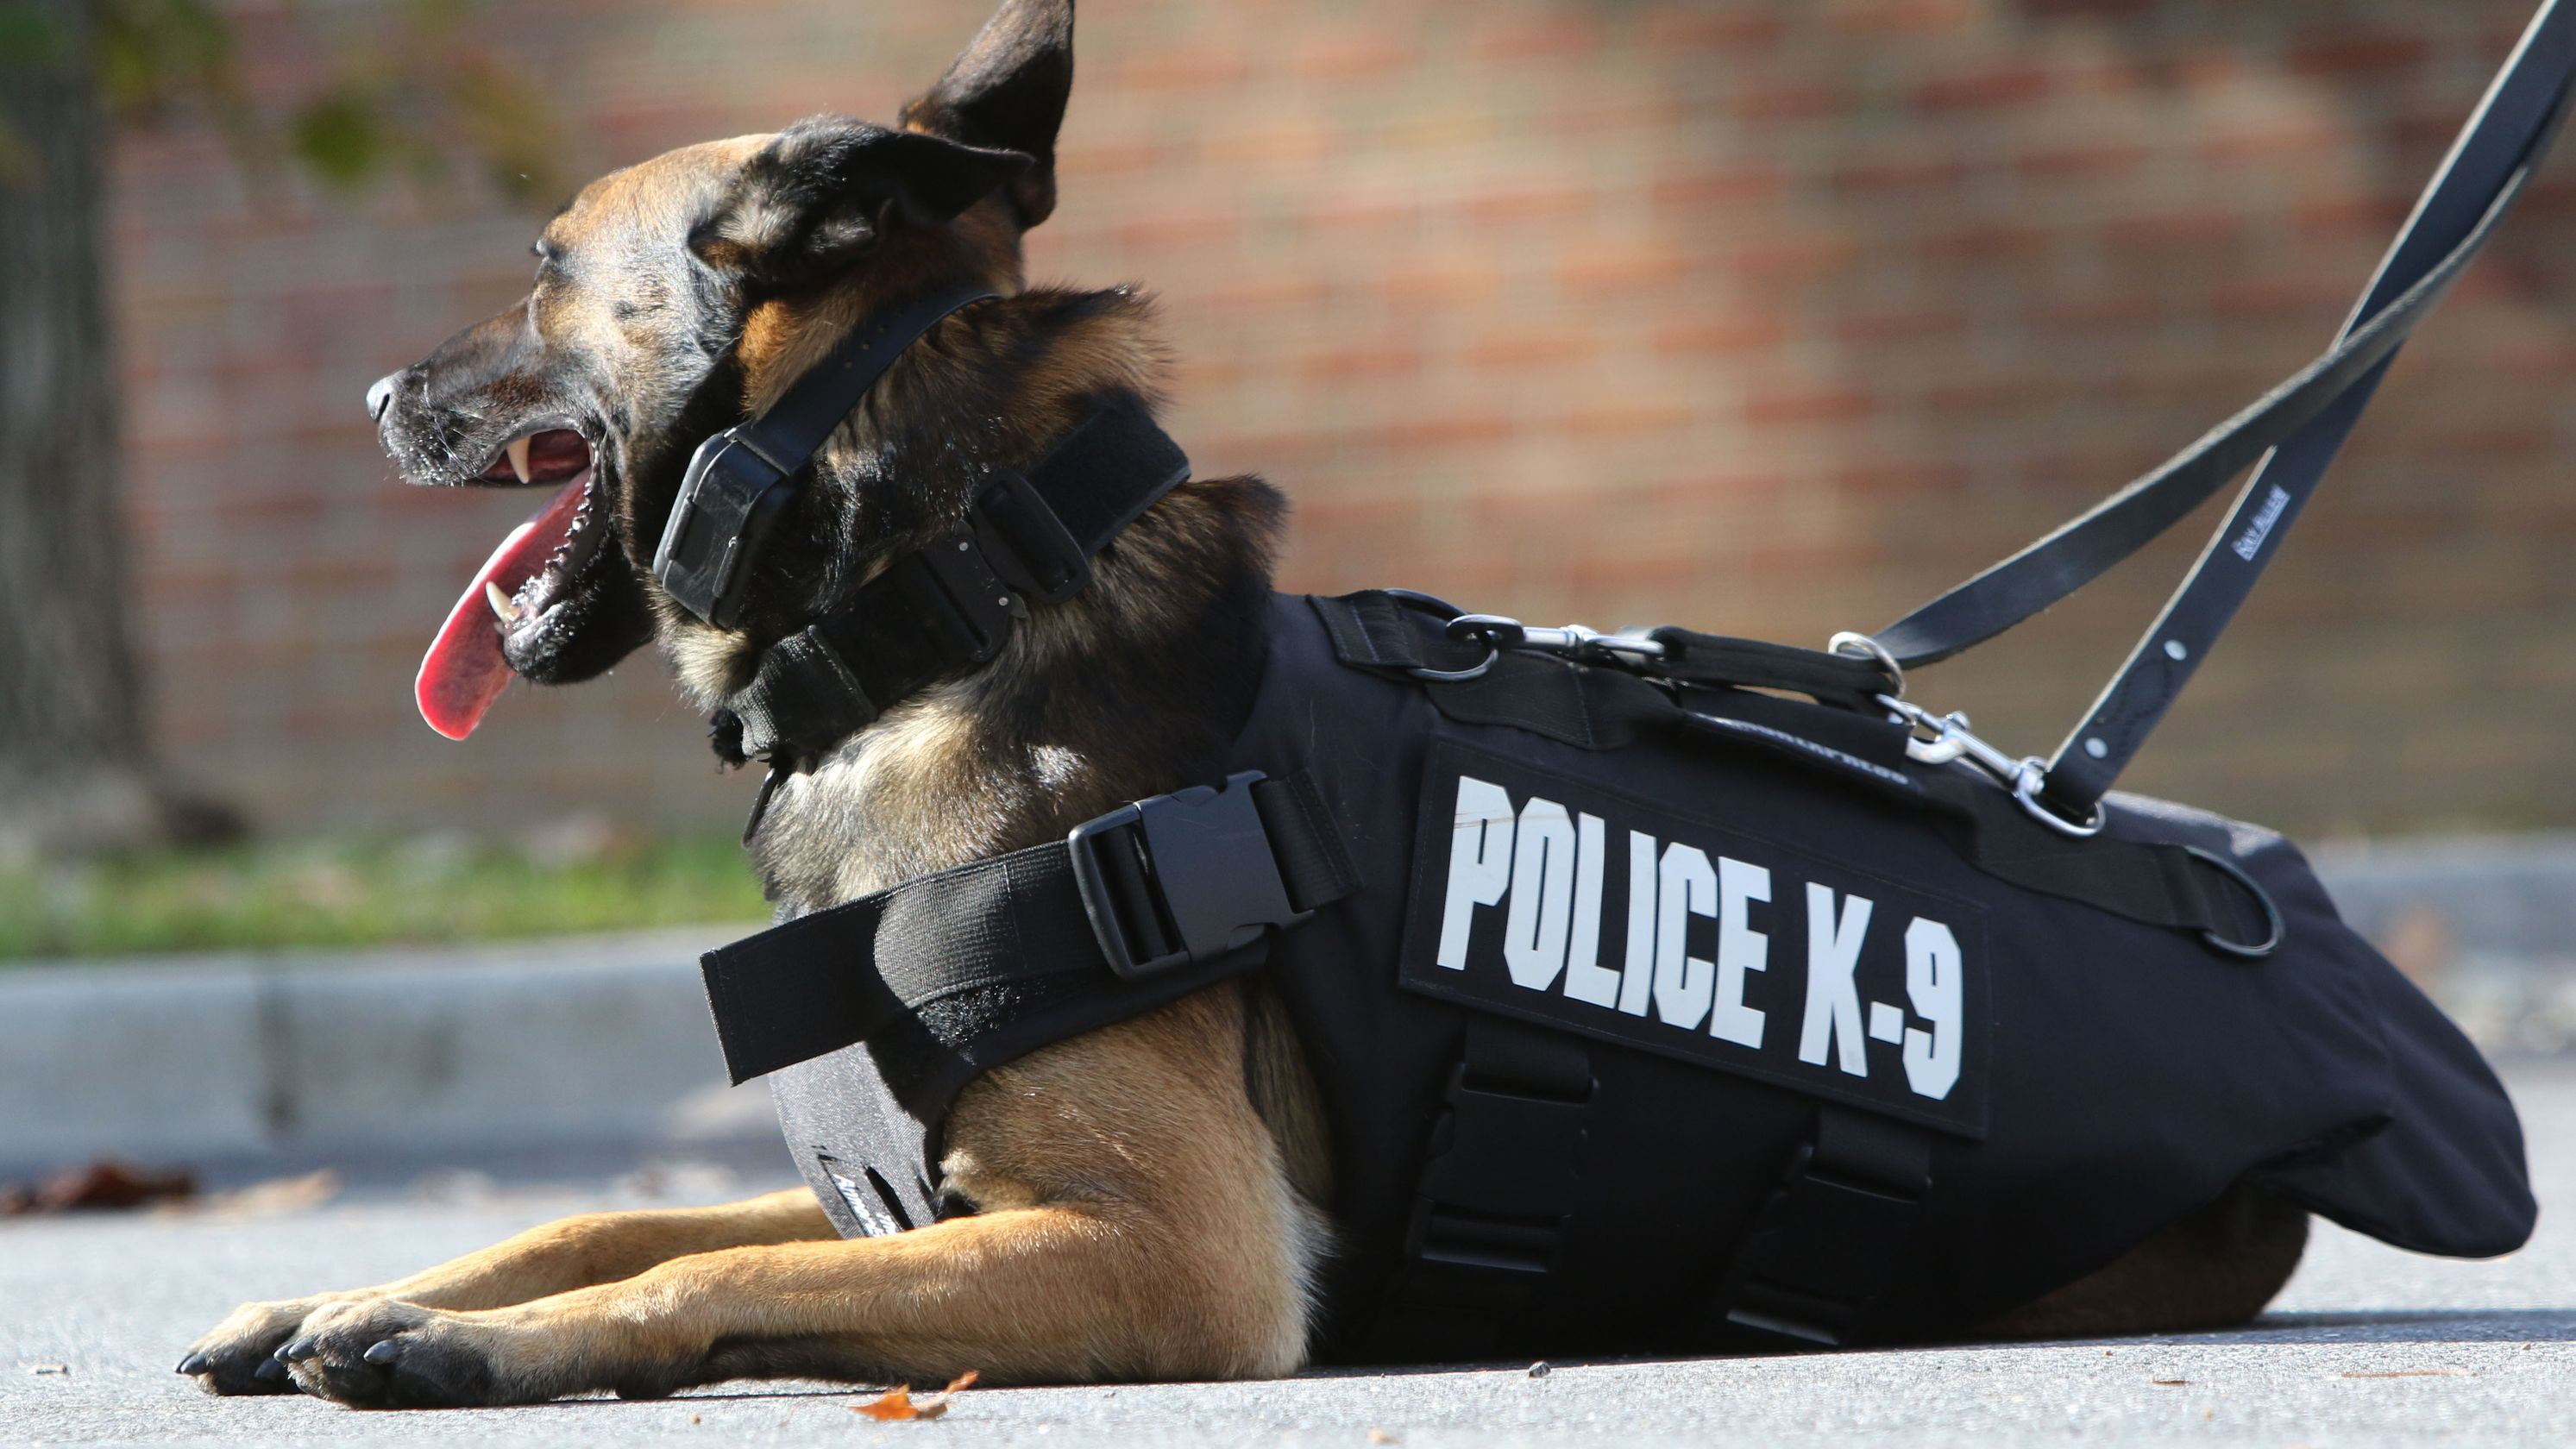 California News: K-9 helps subdue suspect after chase, standoff on 15 Freeway in Ontario (video)